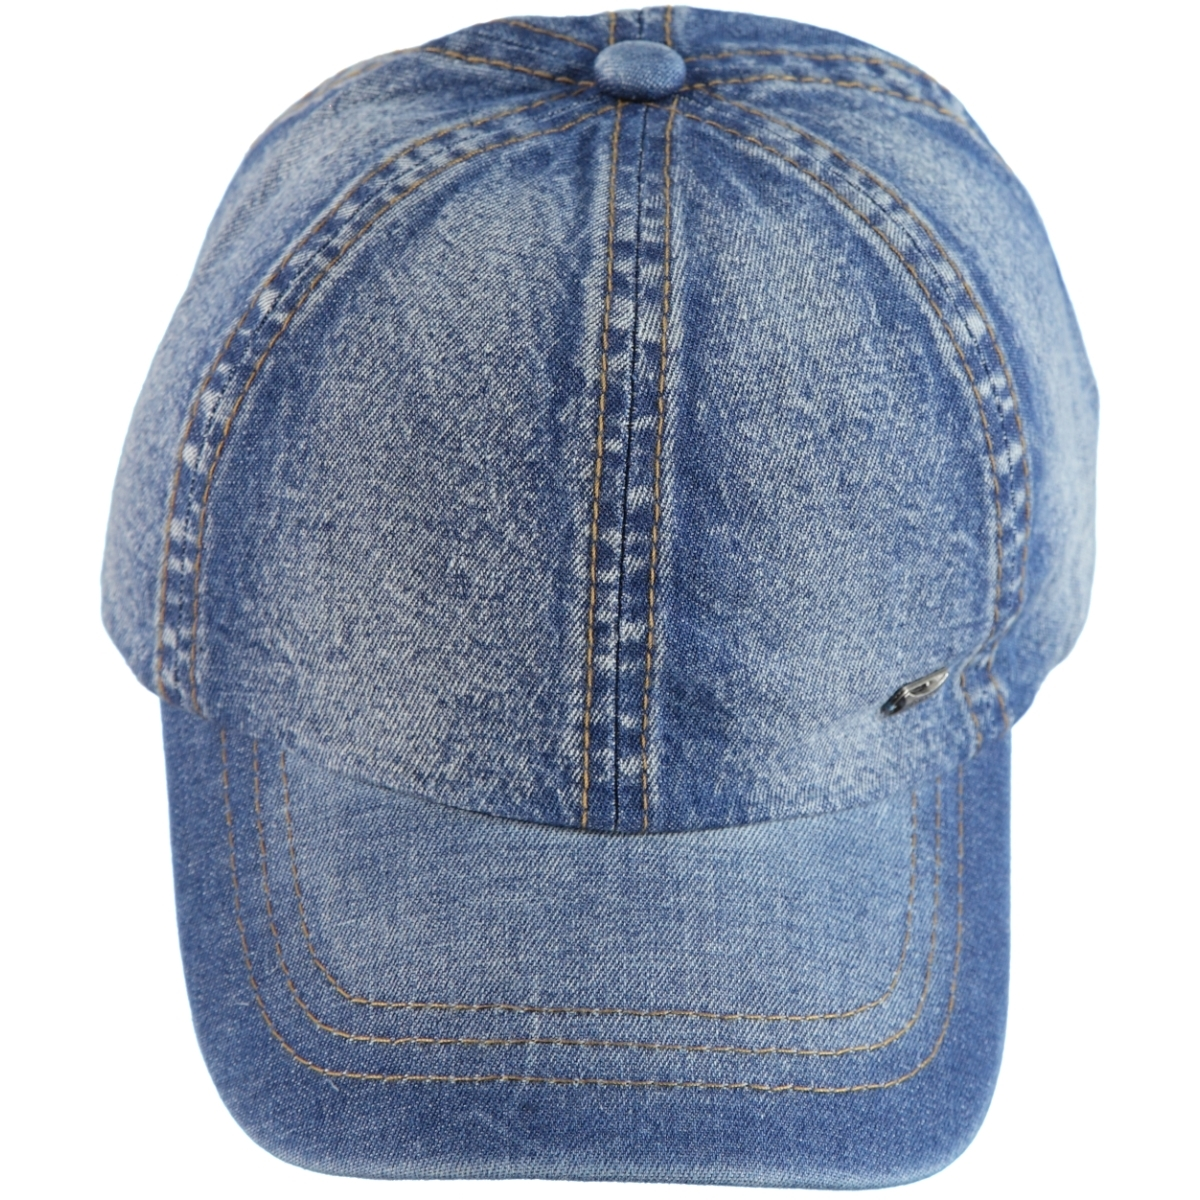 Kitti The Ages Of 9-15 Hat Blue Jeans Boy